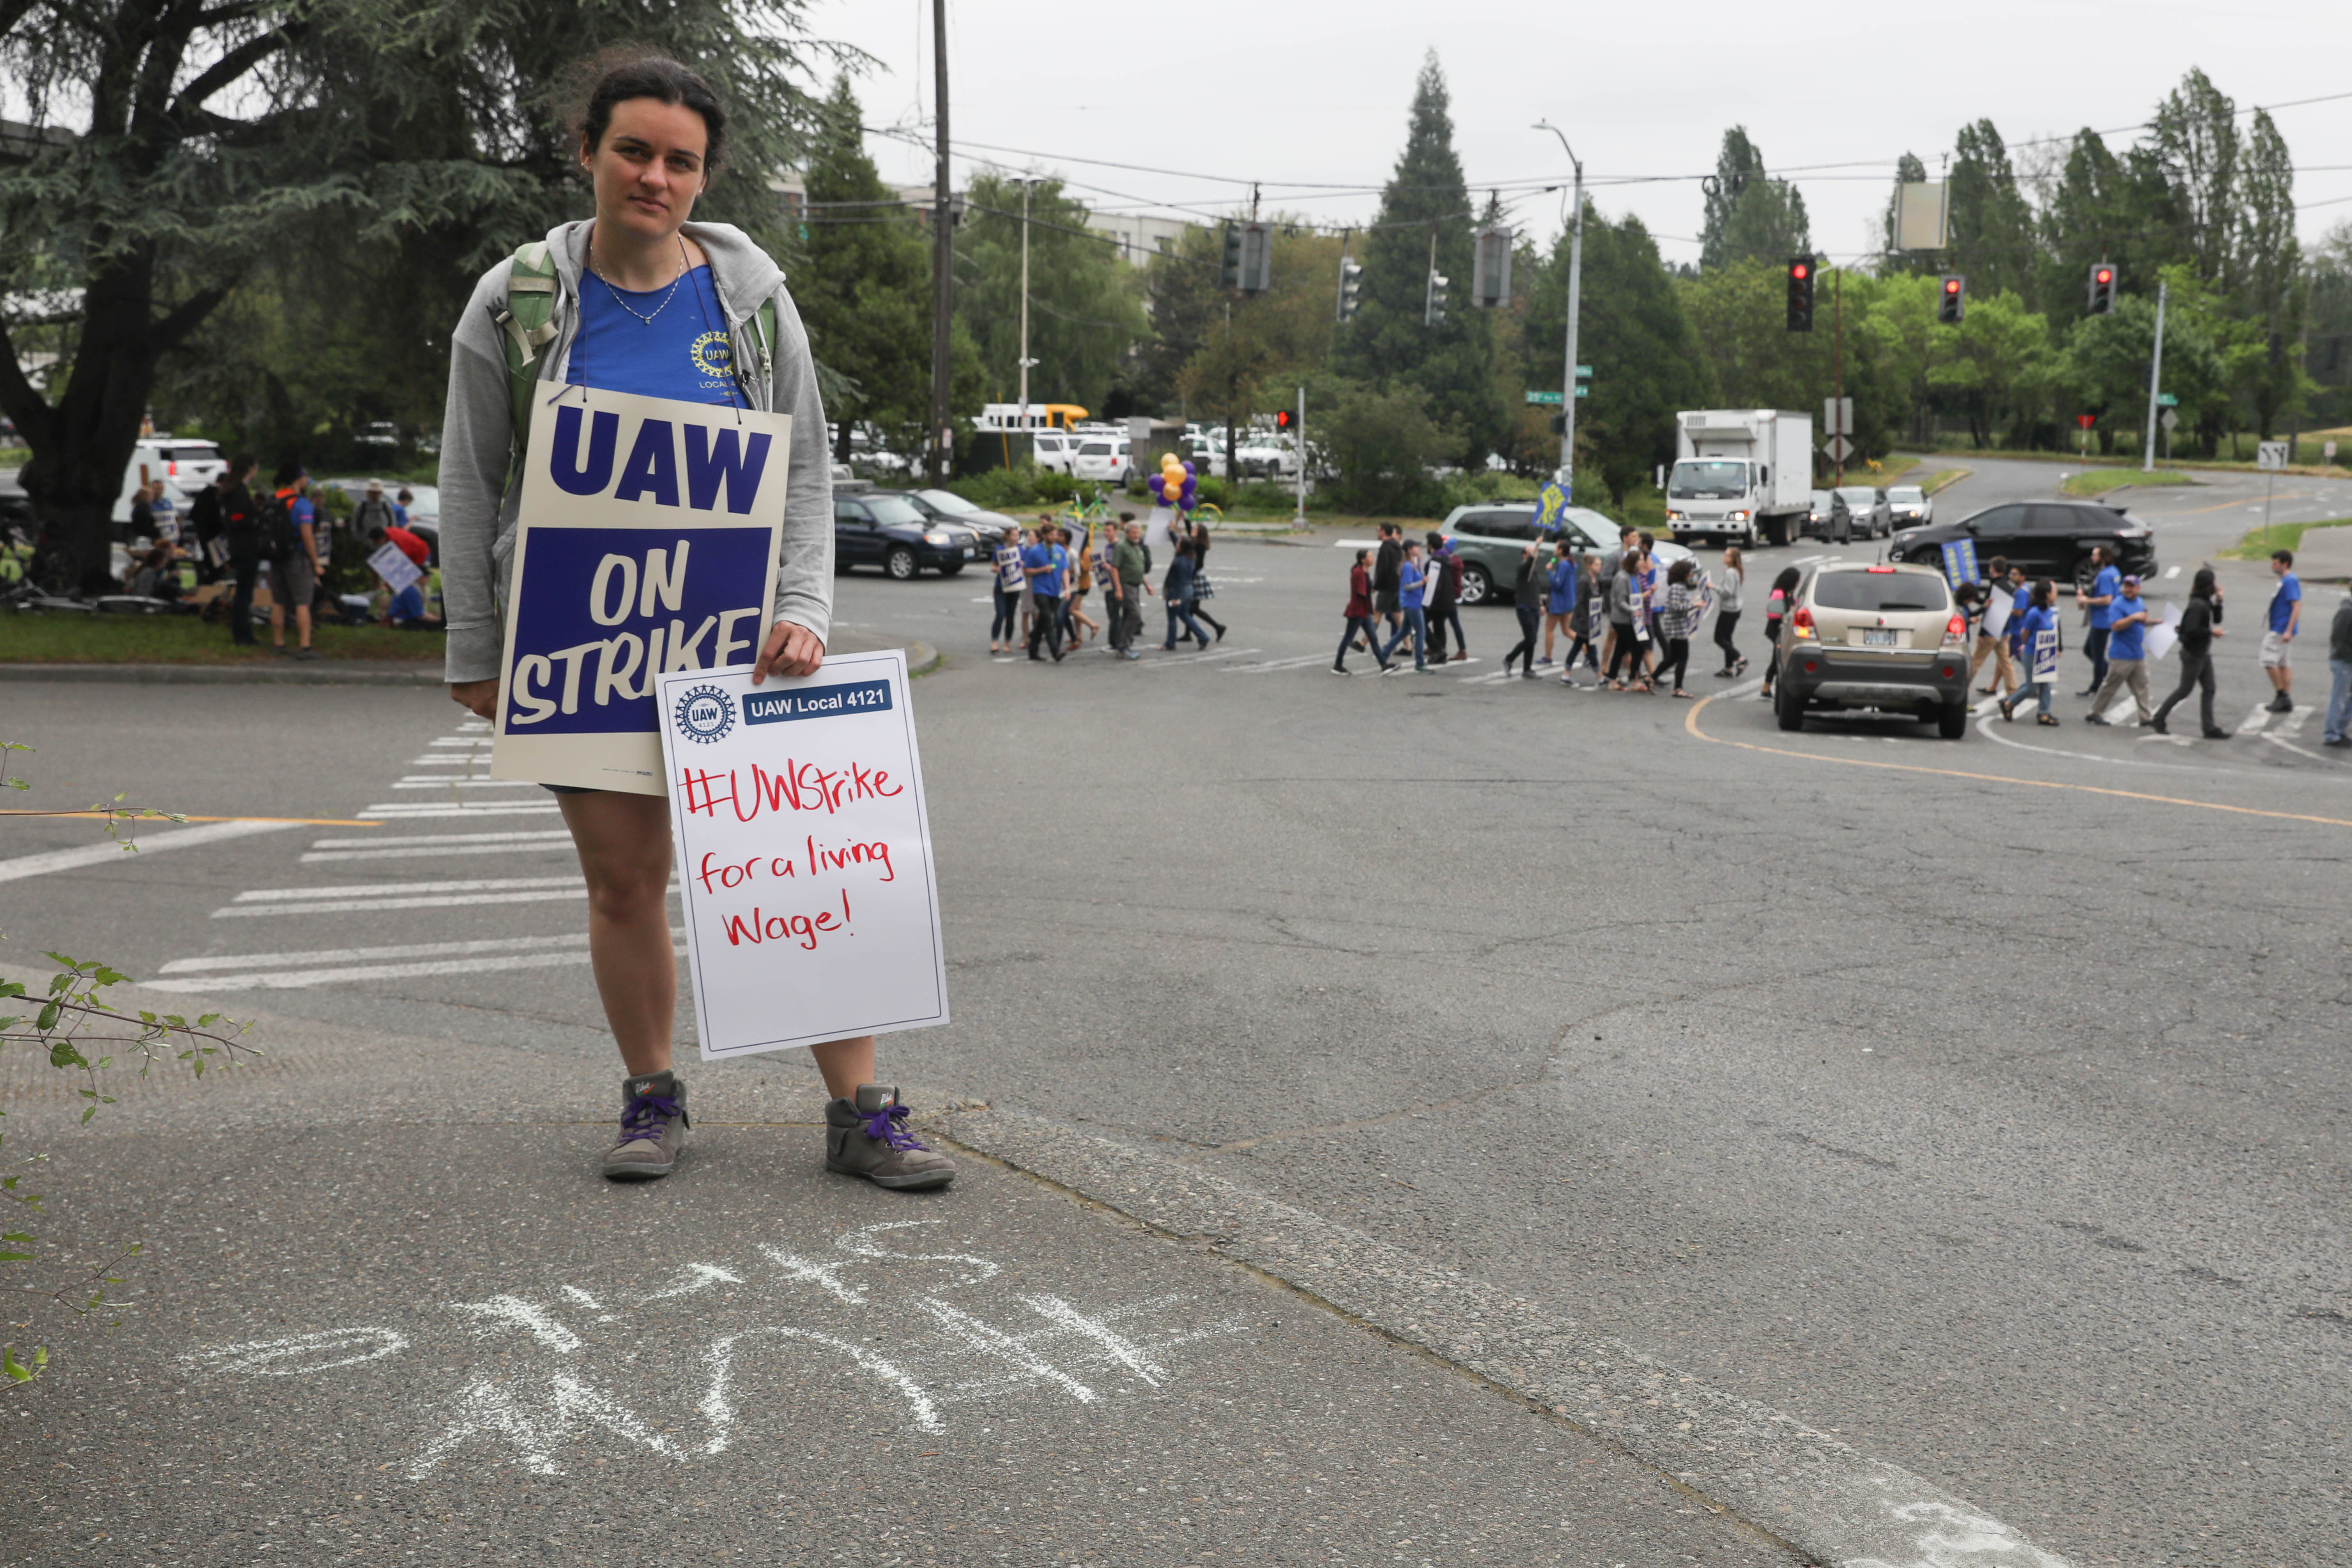 Emily Willard stands near the corner of Pend Oreille Street and Montlake Boulevard NE during a one-day strike with graduate students who are represented by UAW Local 421 at the University of Washington in Seattle, May 14, 2018.